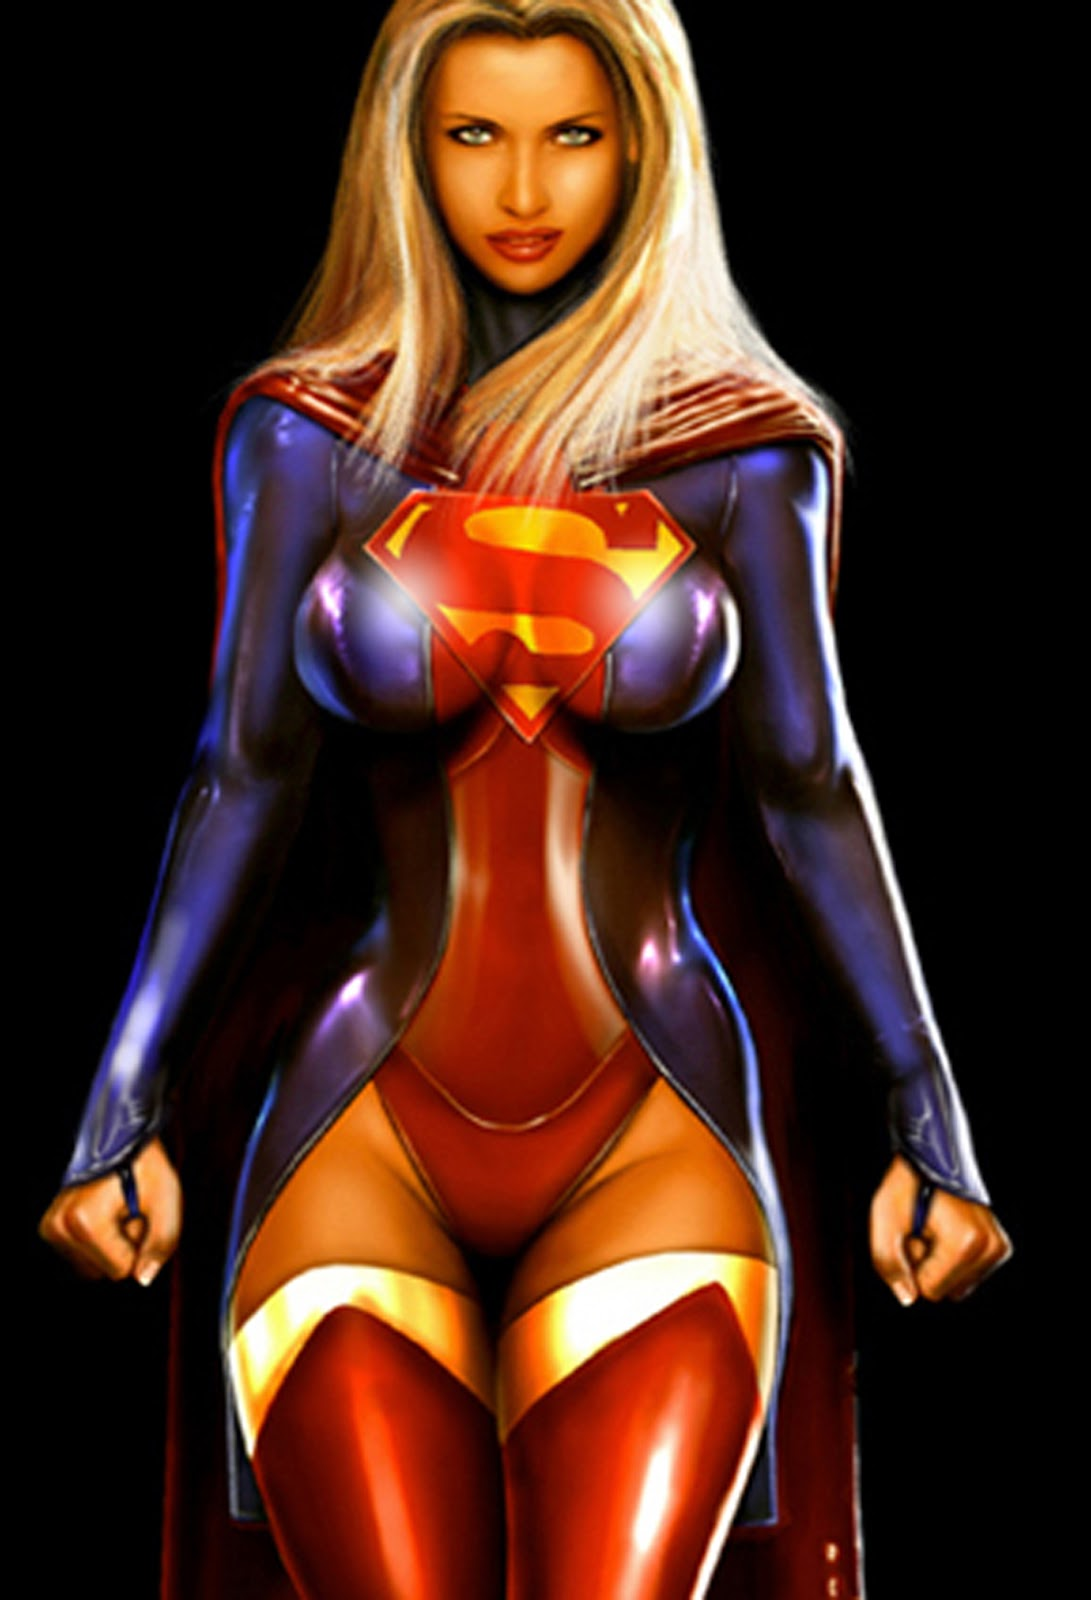 photos boobs hot sexy big superheroes